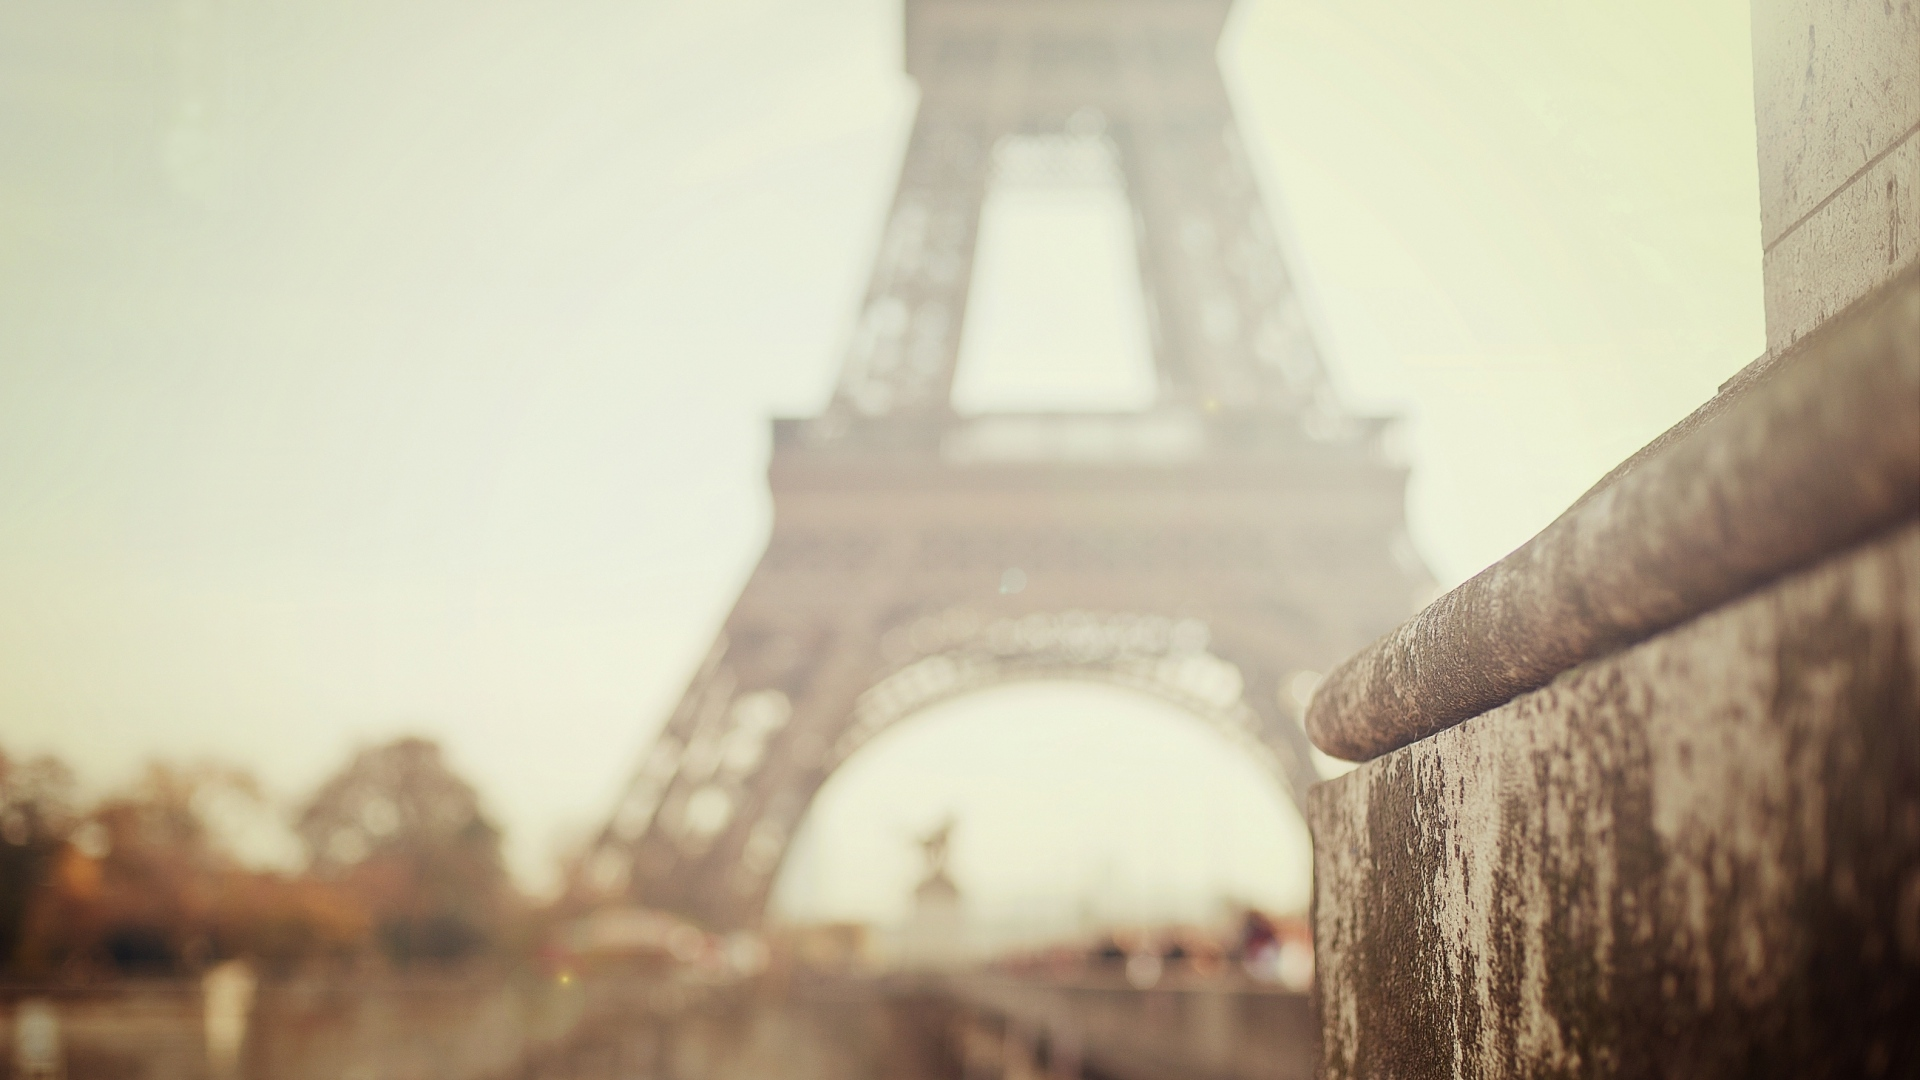 City-Paris-Eiffel-Tower-Bokeh-Focus-Blur-1920x1080-Need-iPhone-S-Plus-Background-wallpaper-wpc5803506